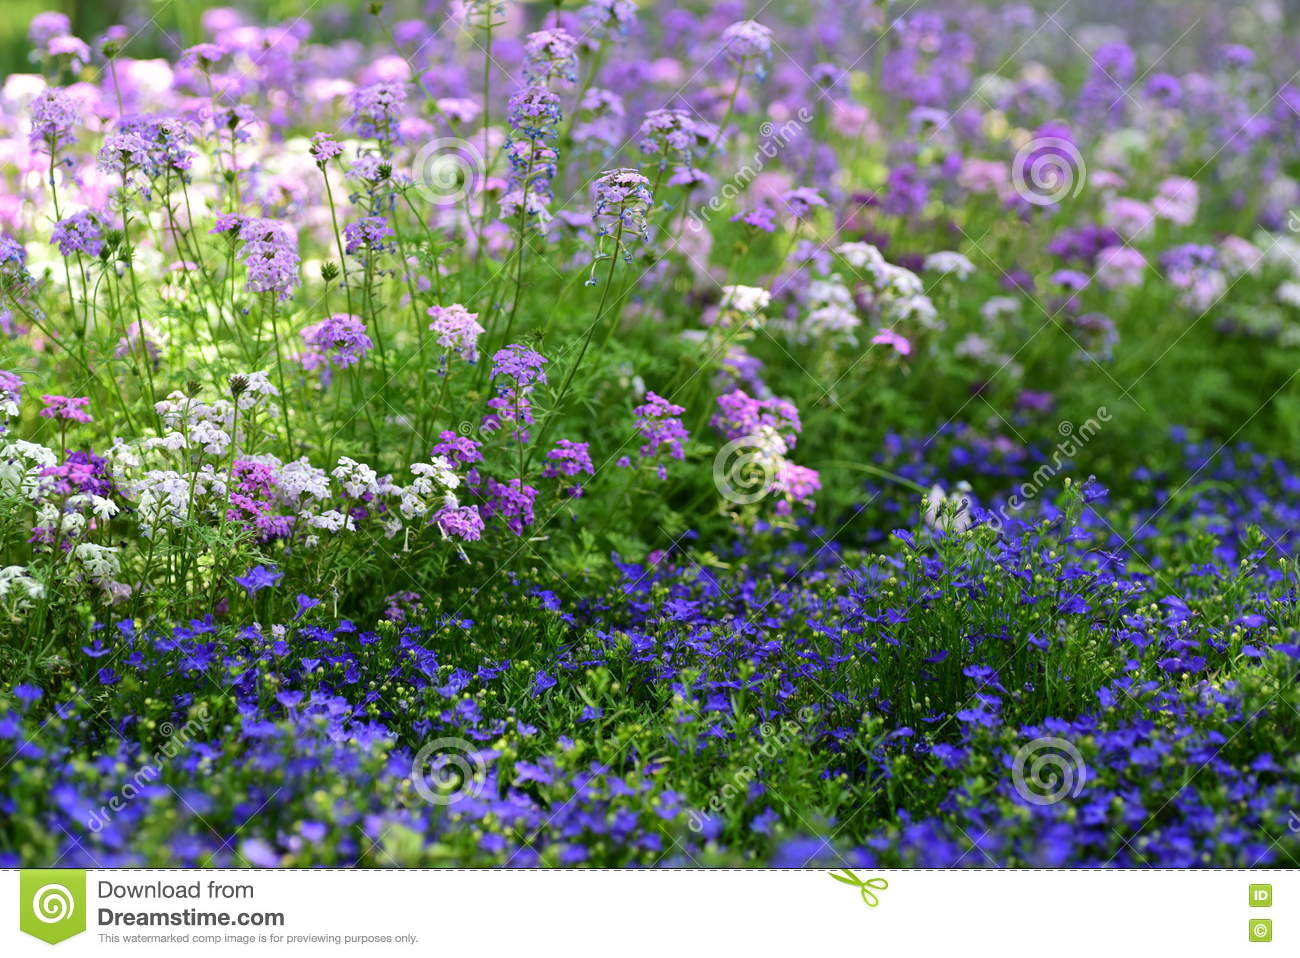 Coloful Garden Verbena Flowers Stock Image , Image of